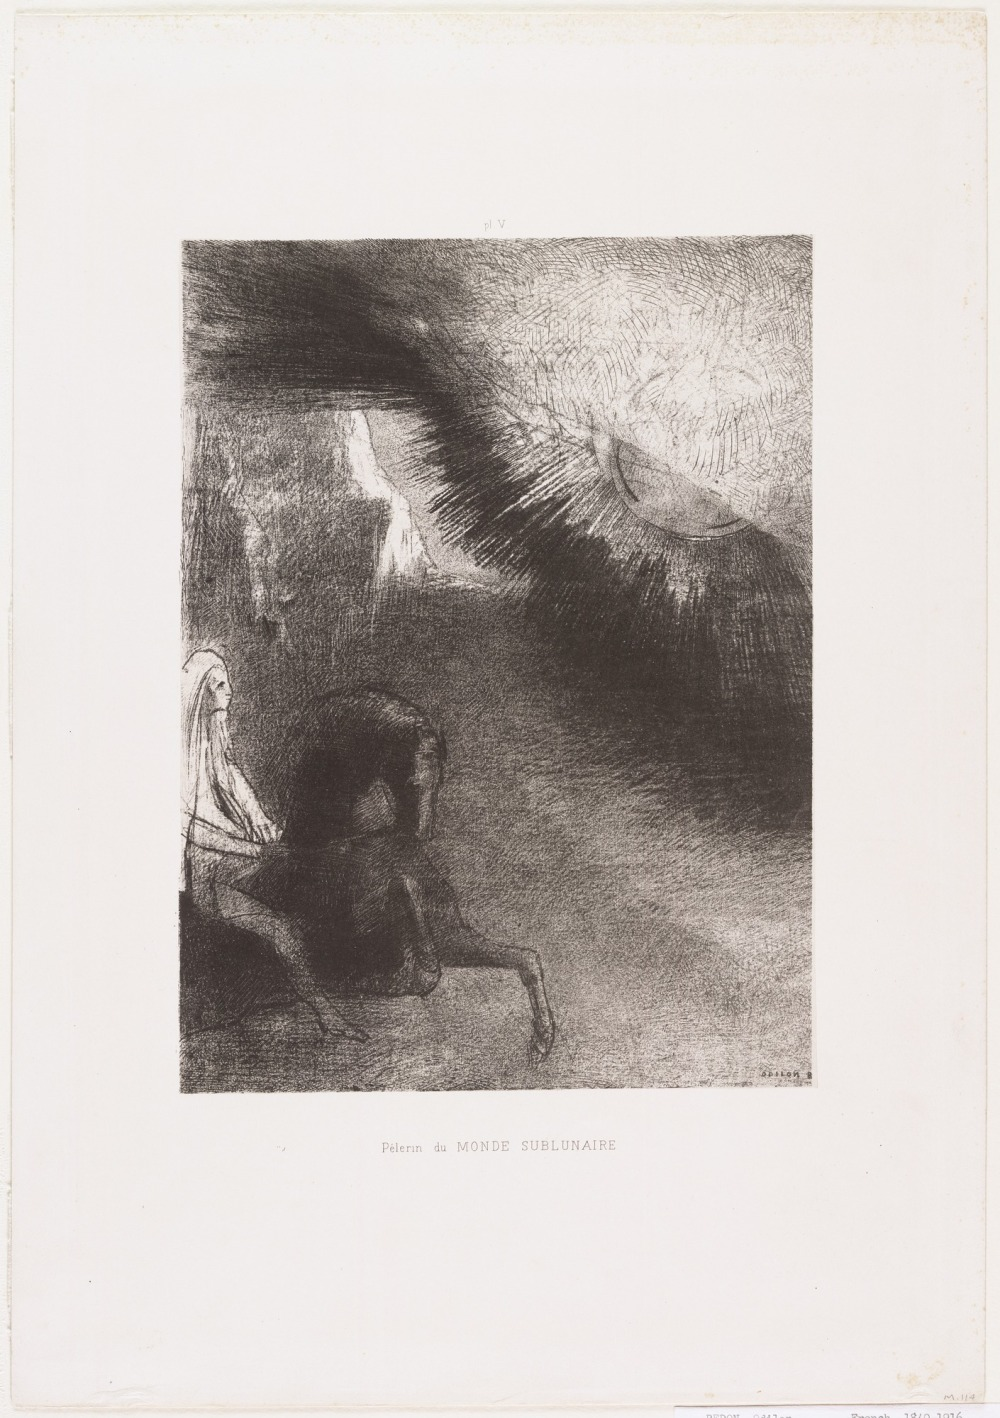 Odilon Redon. Pilgrim of the Sublunary World 1891